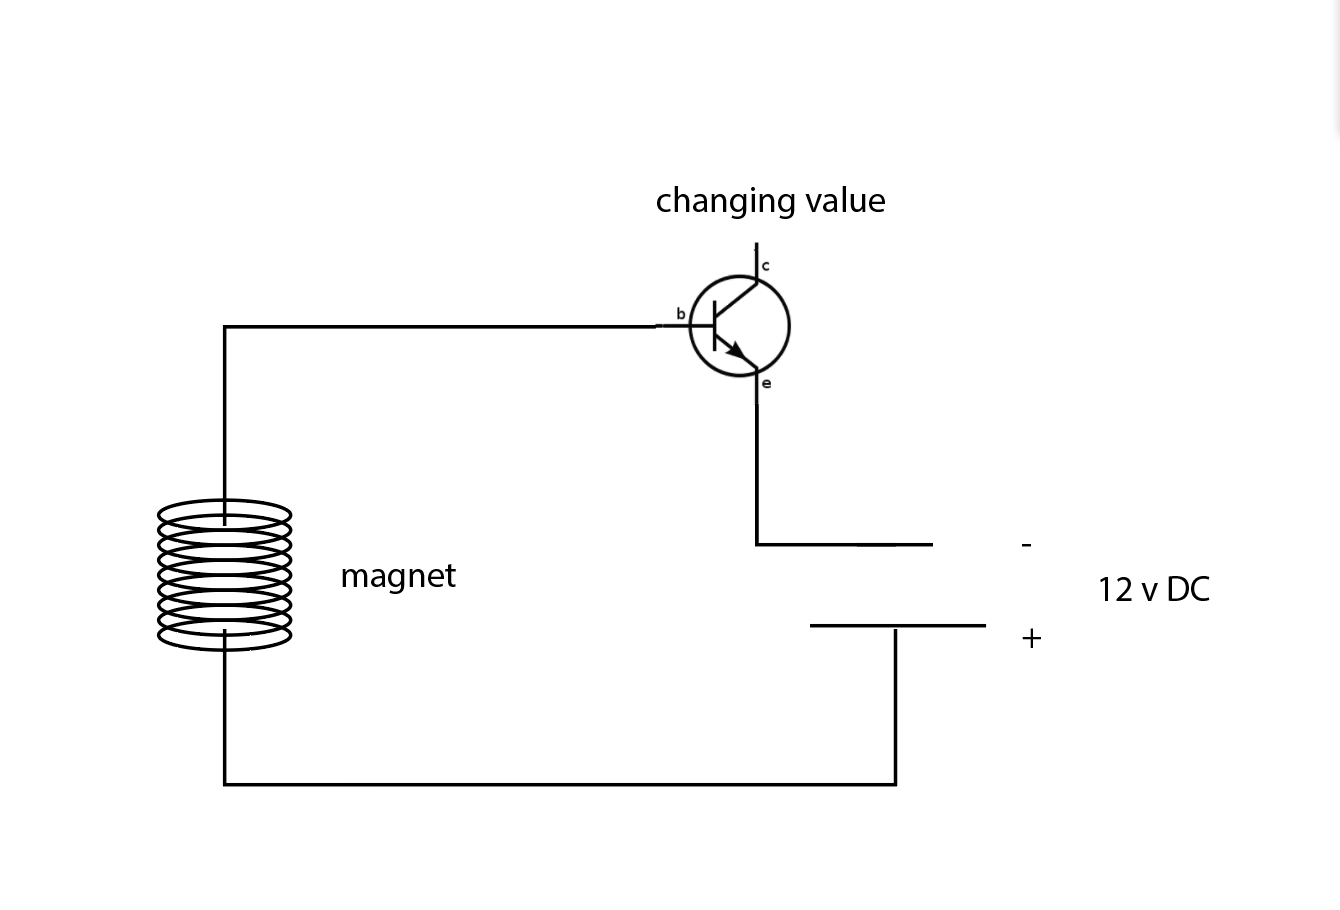 hight resolution of image of circuit